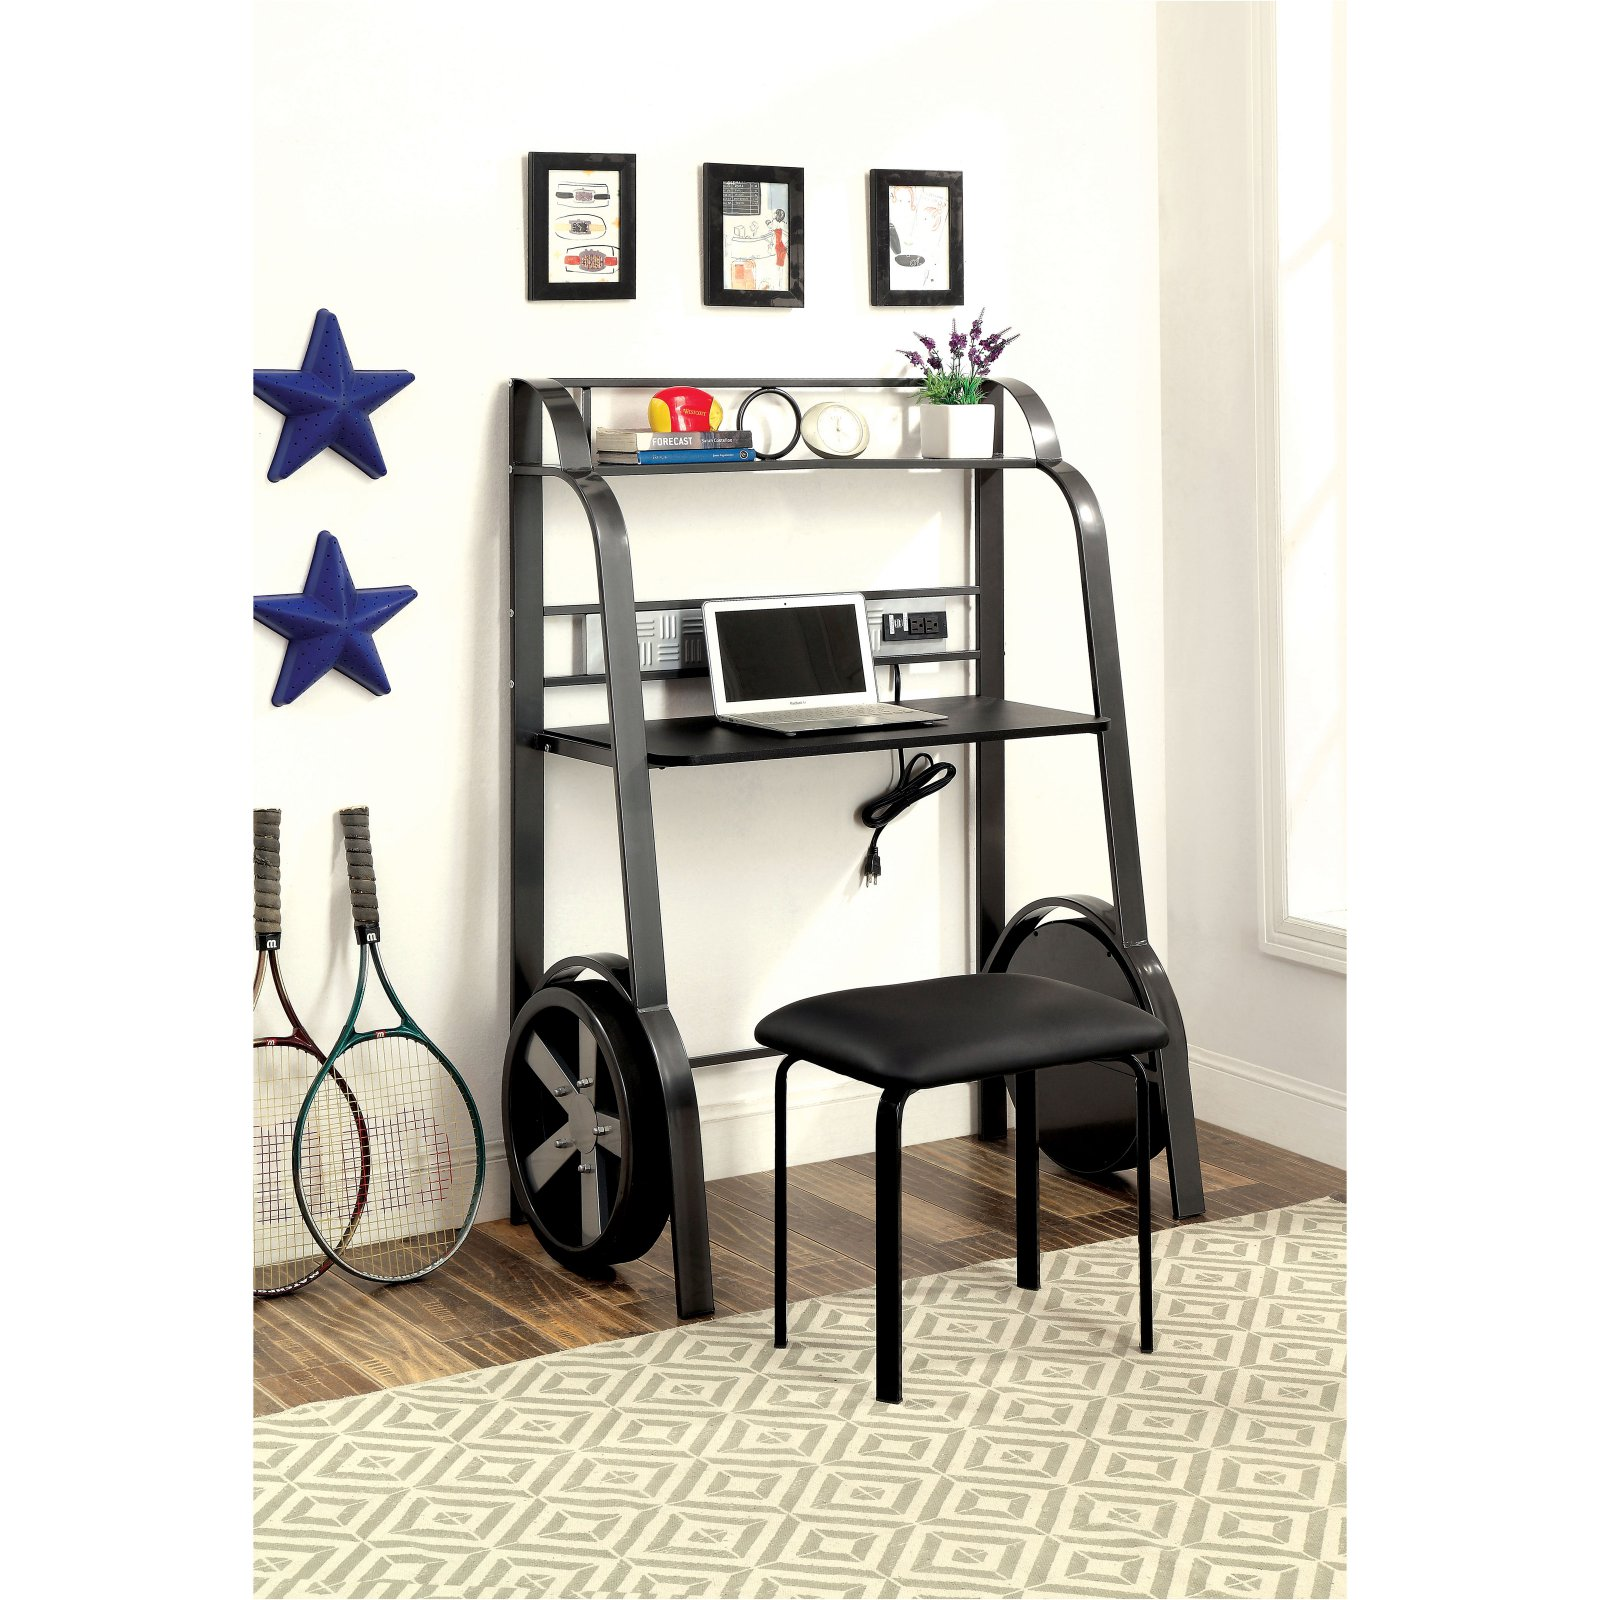 Furniture of America Almirel Racer Child Desk - Gun Metal